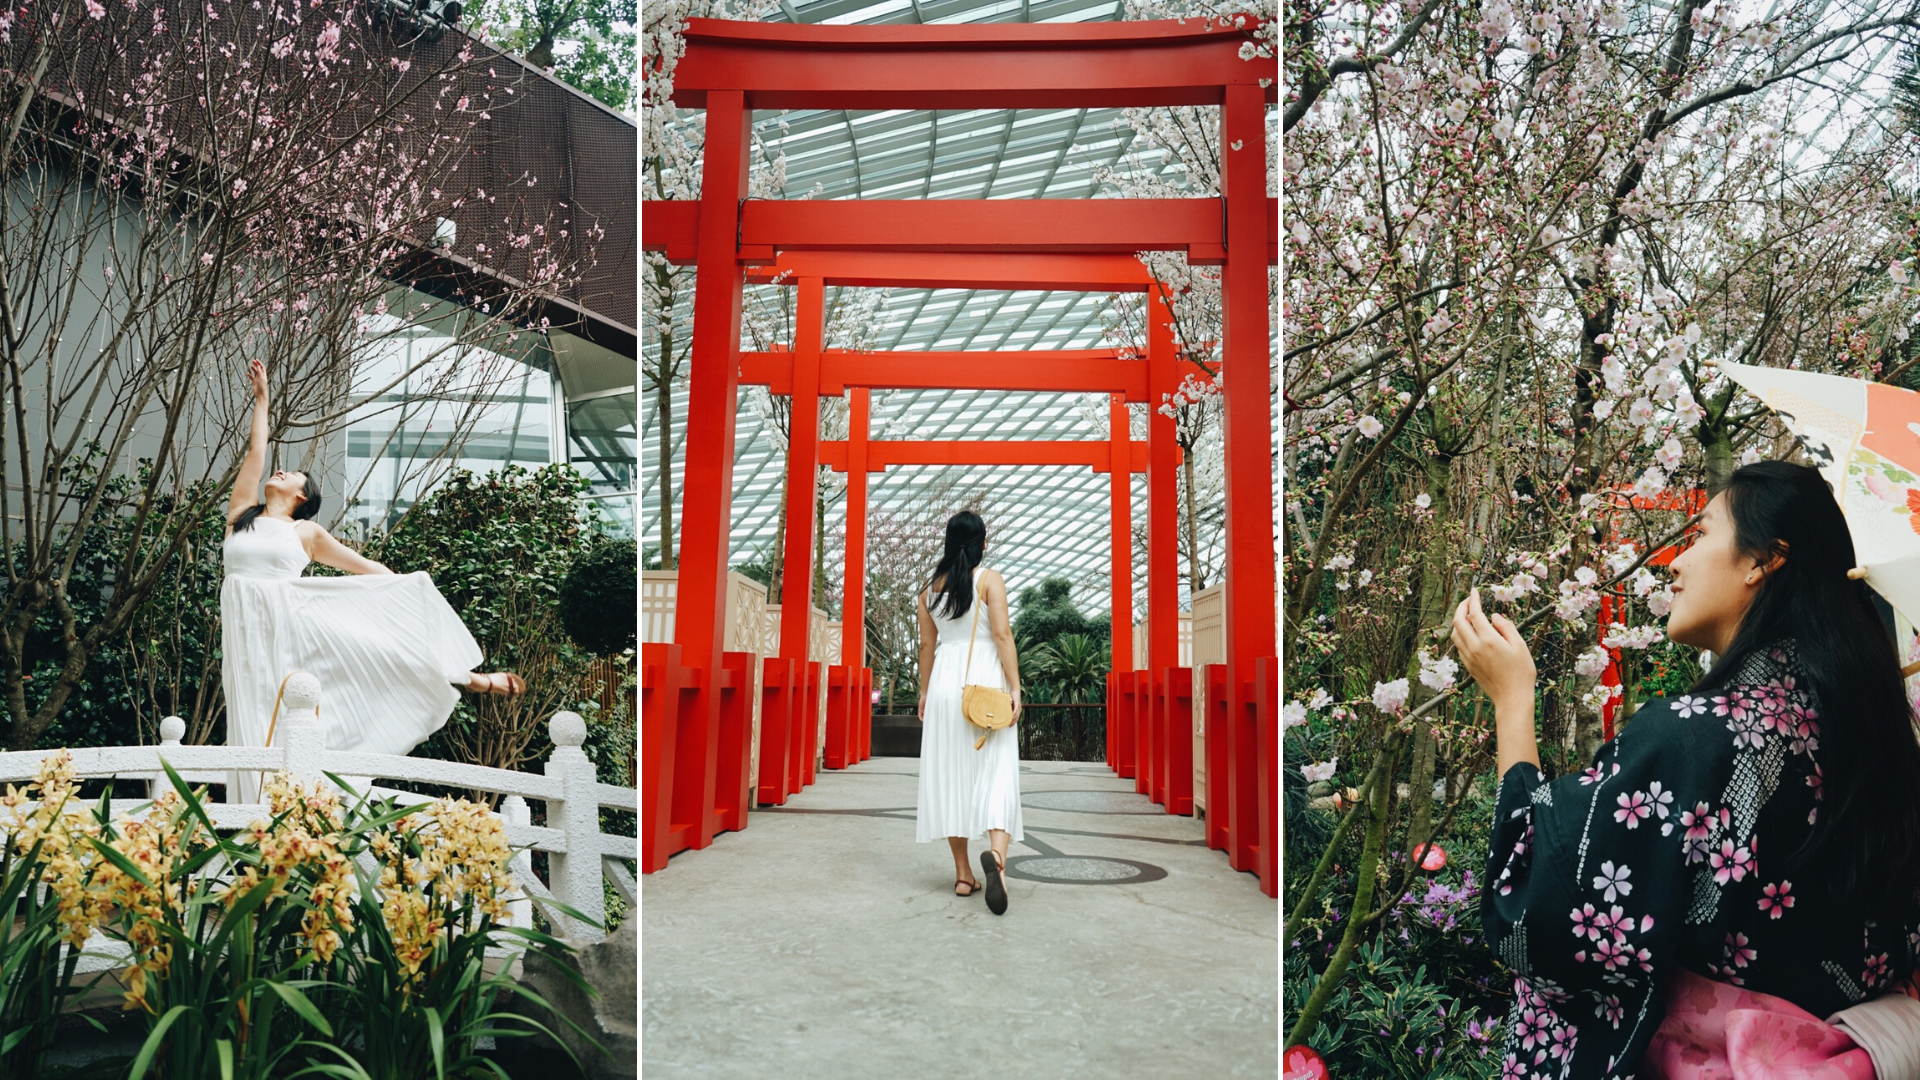 Catch The Cherry Blossoms In Singapore At Sakura Matsuri In Gardens By The Bay